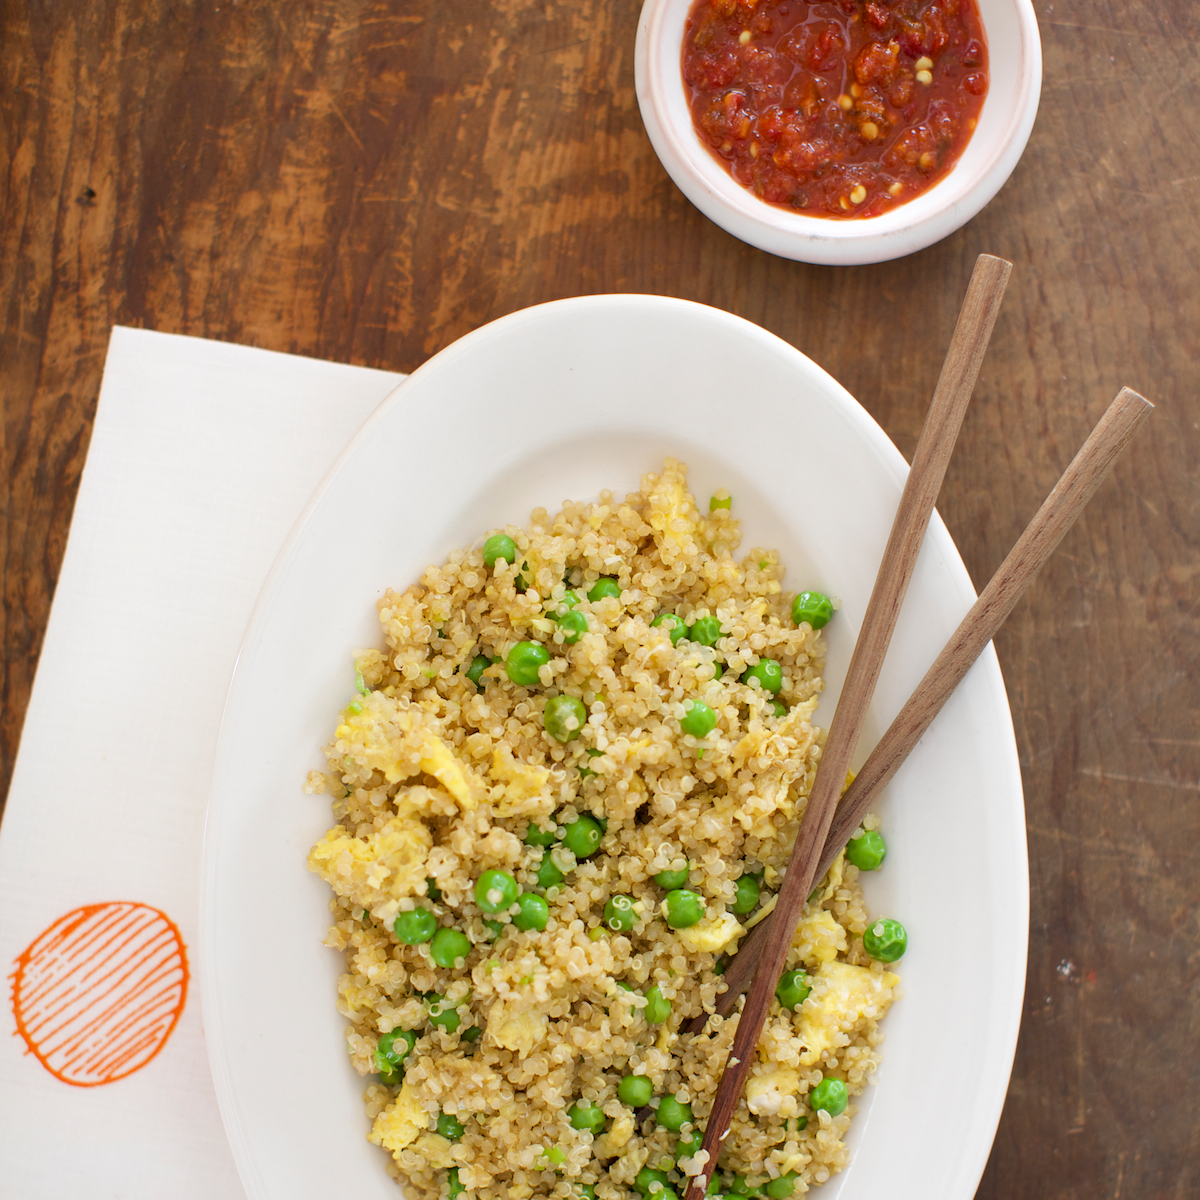 Fried Quinoa with Scallions, Ginger and Garlic